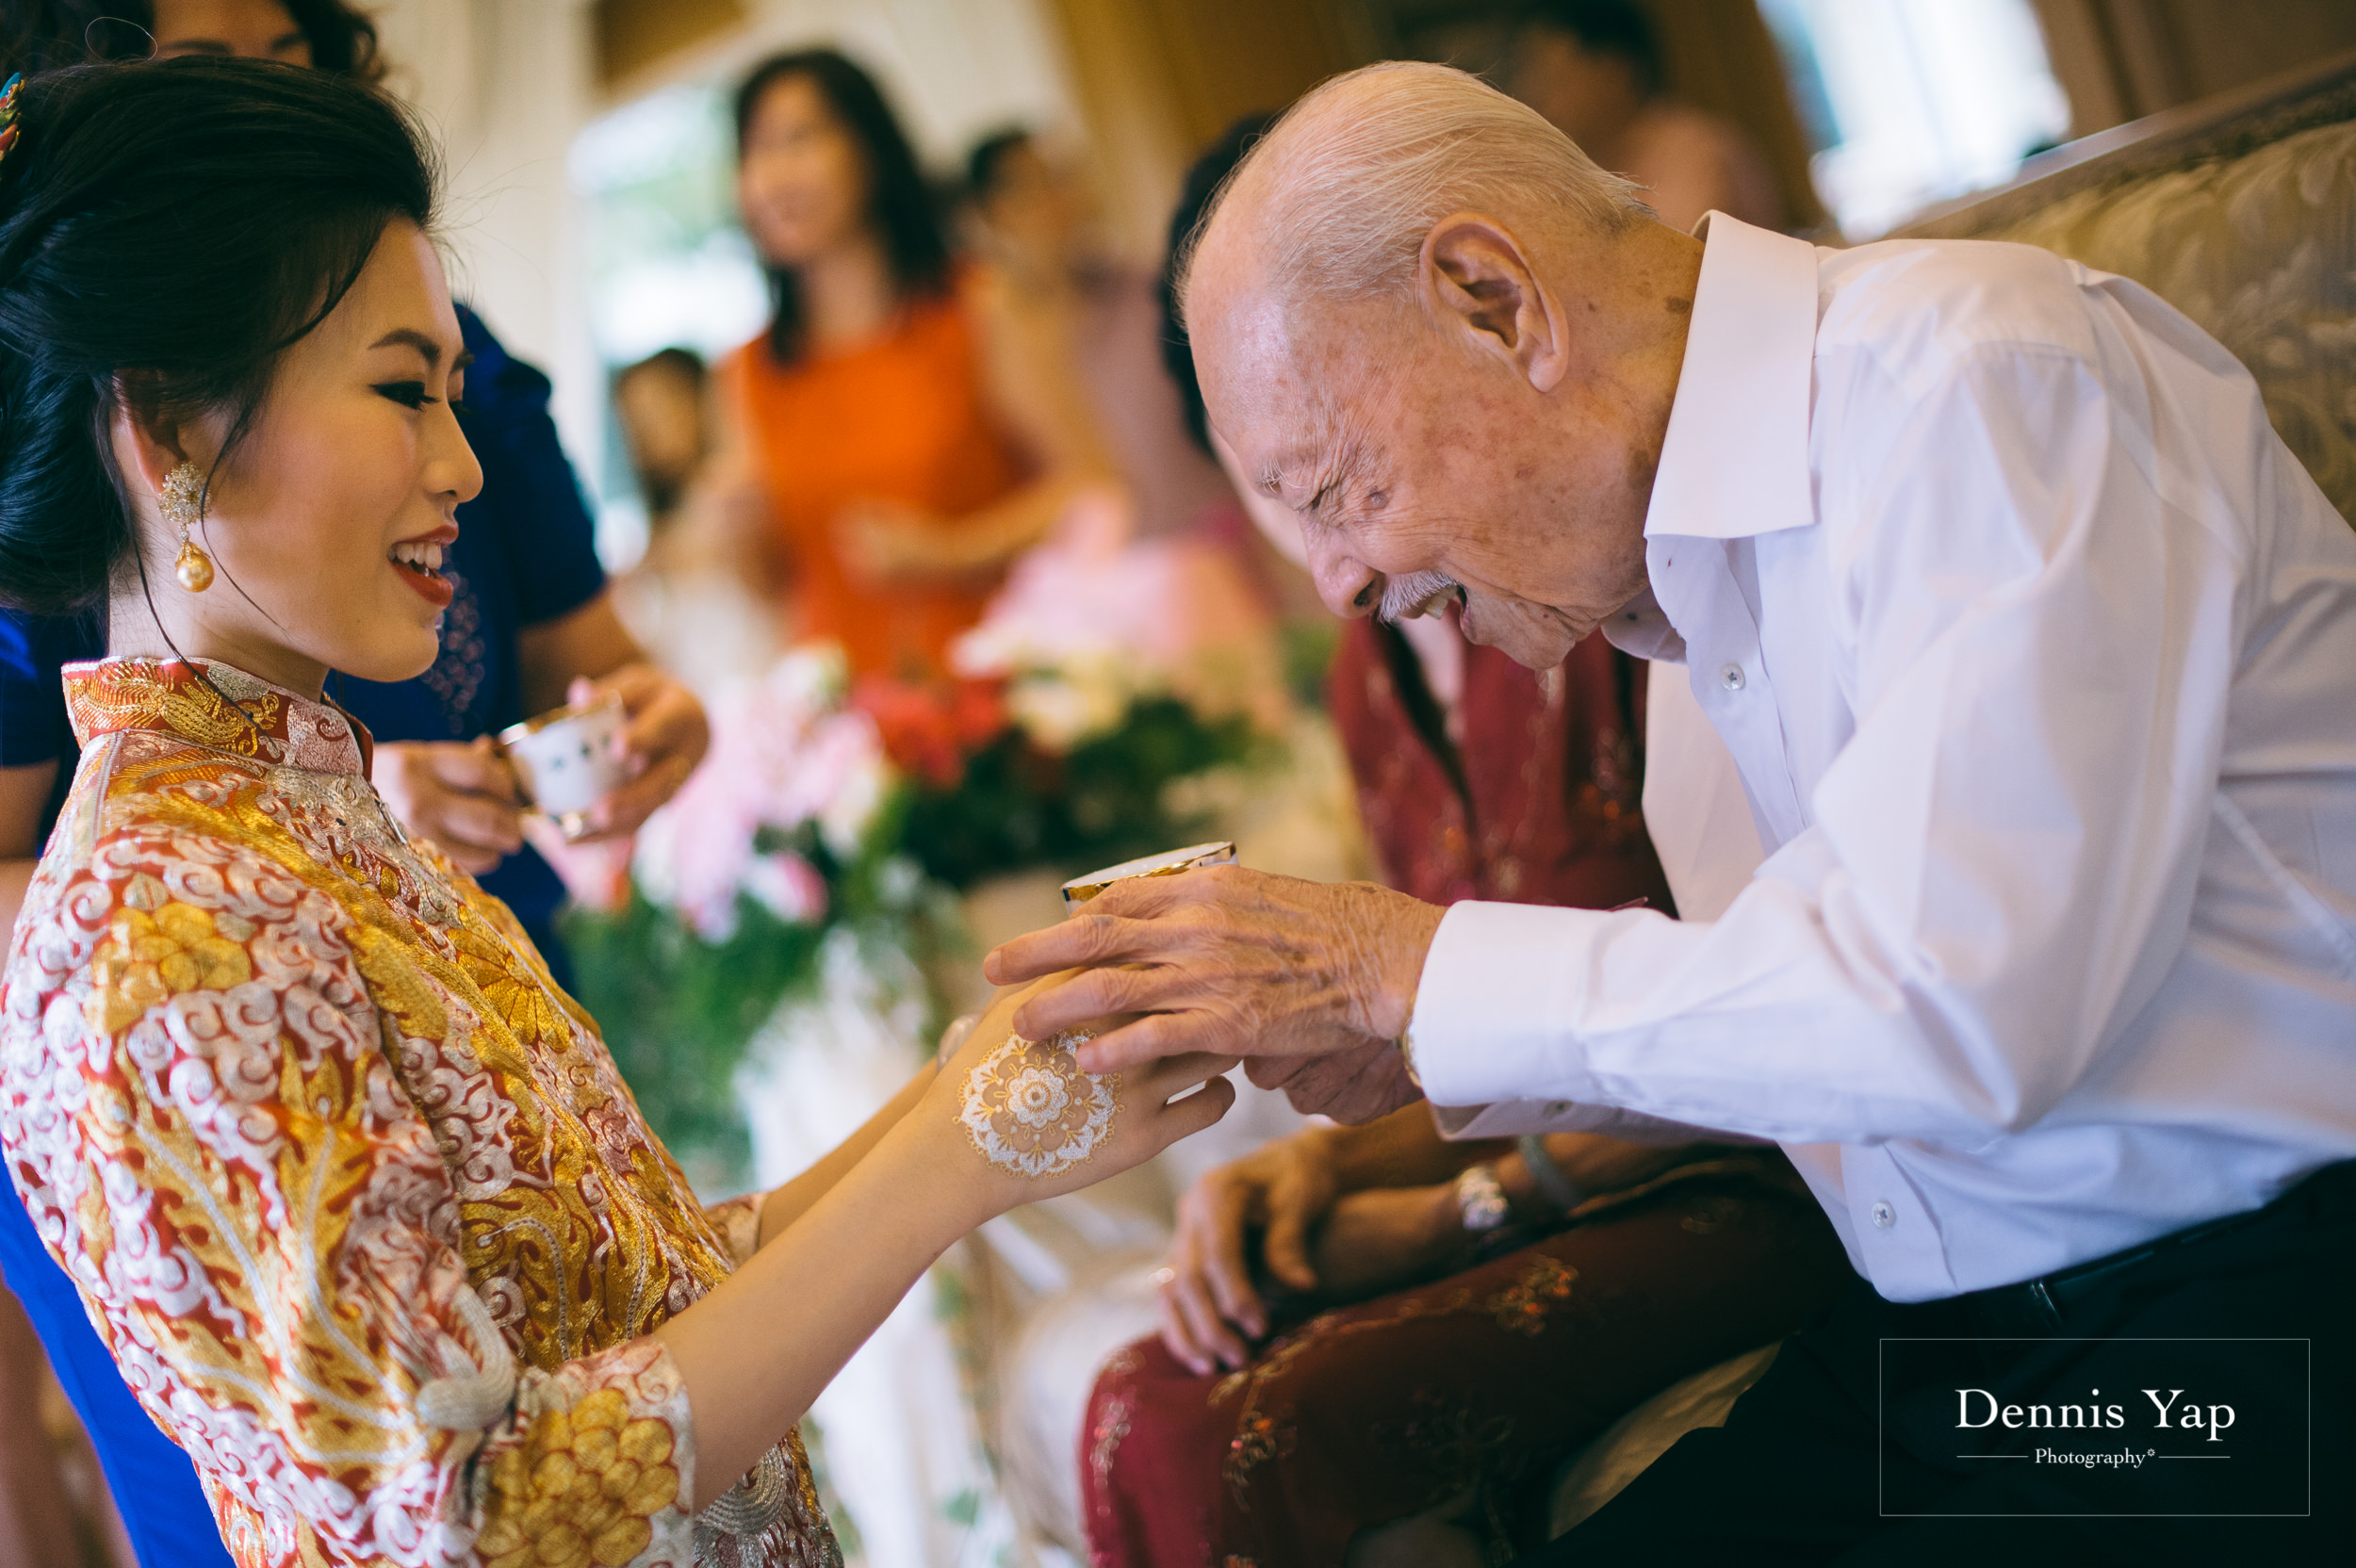 ser siang sze liang wedding day crazy style dennis yap photography malaysia wedding photographer-20.jpg